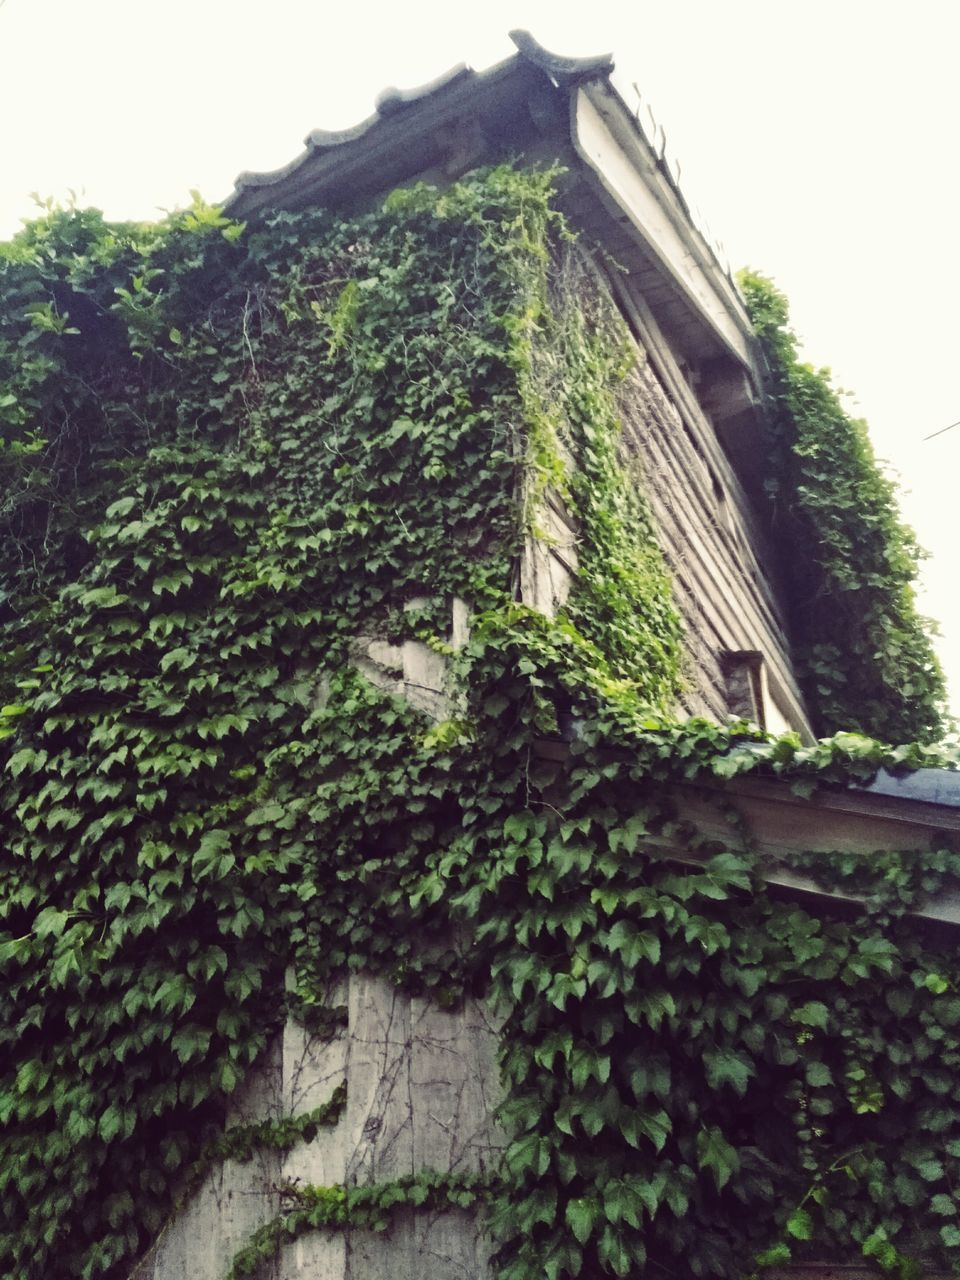 architecture, growth, low angle view, creeper, ivy, built structure, plant, building exterior, tree, no people, green color, overgrown, growing, house, day, outdoors, nature, roof, tiled roof, close-up